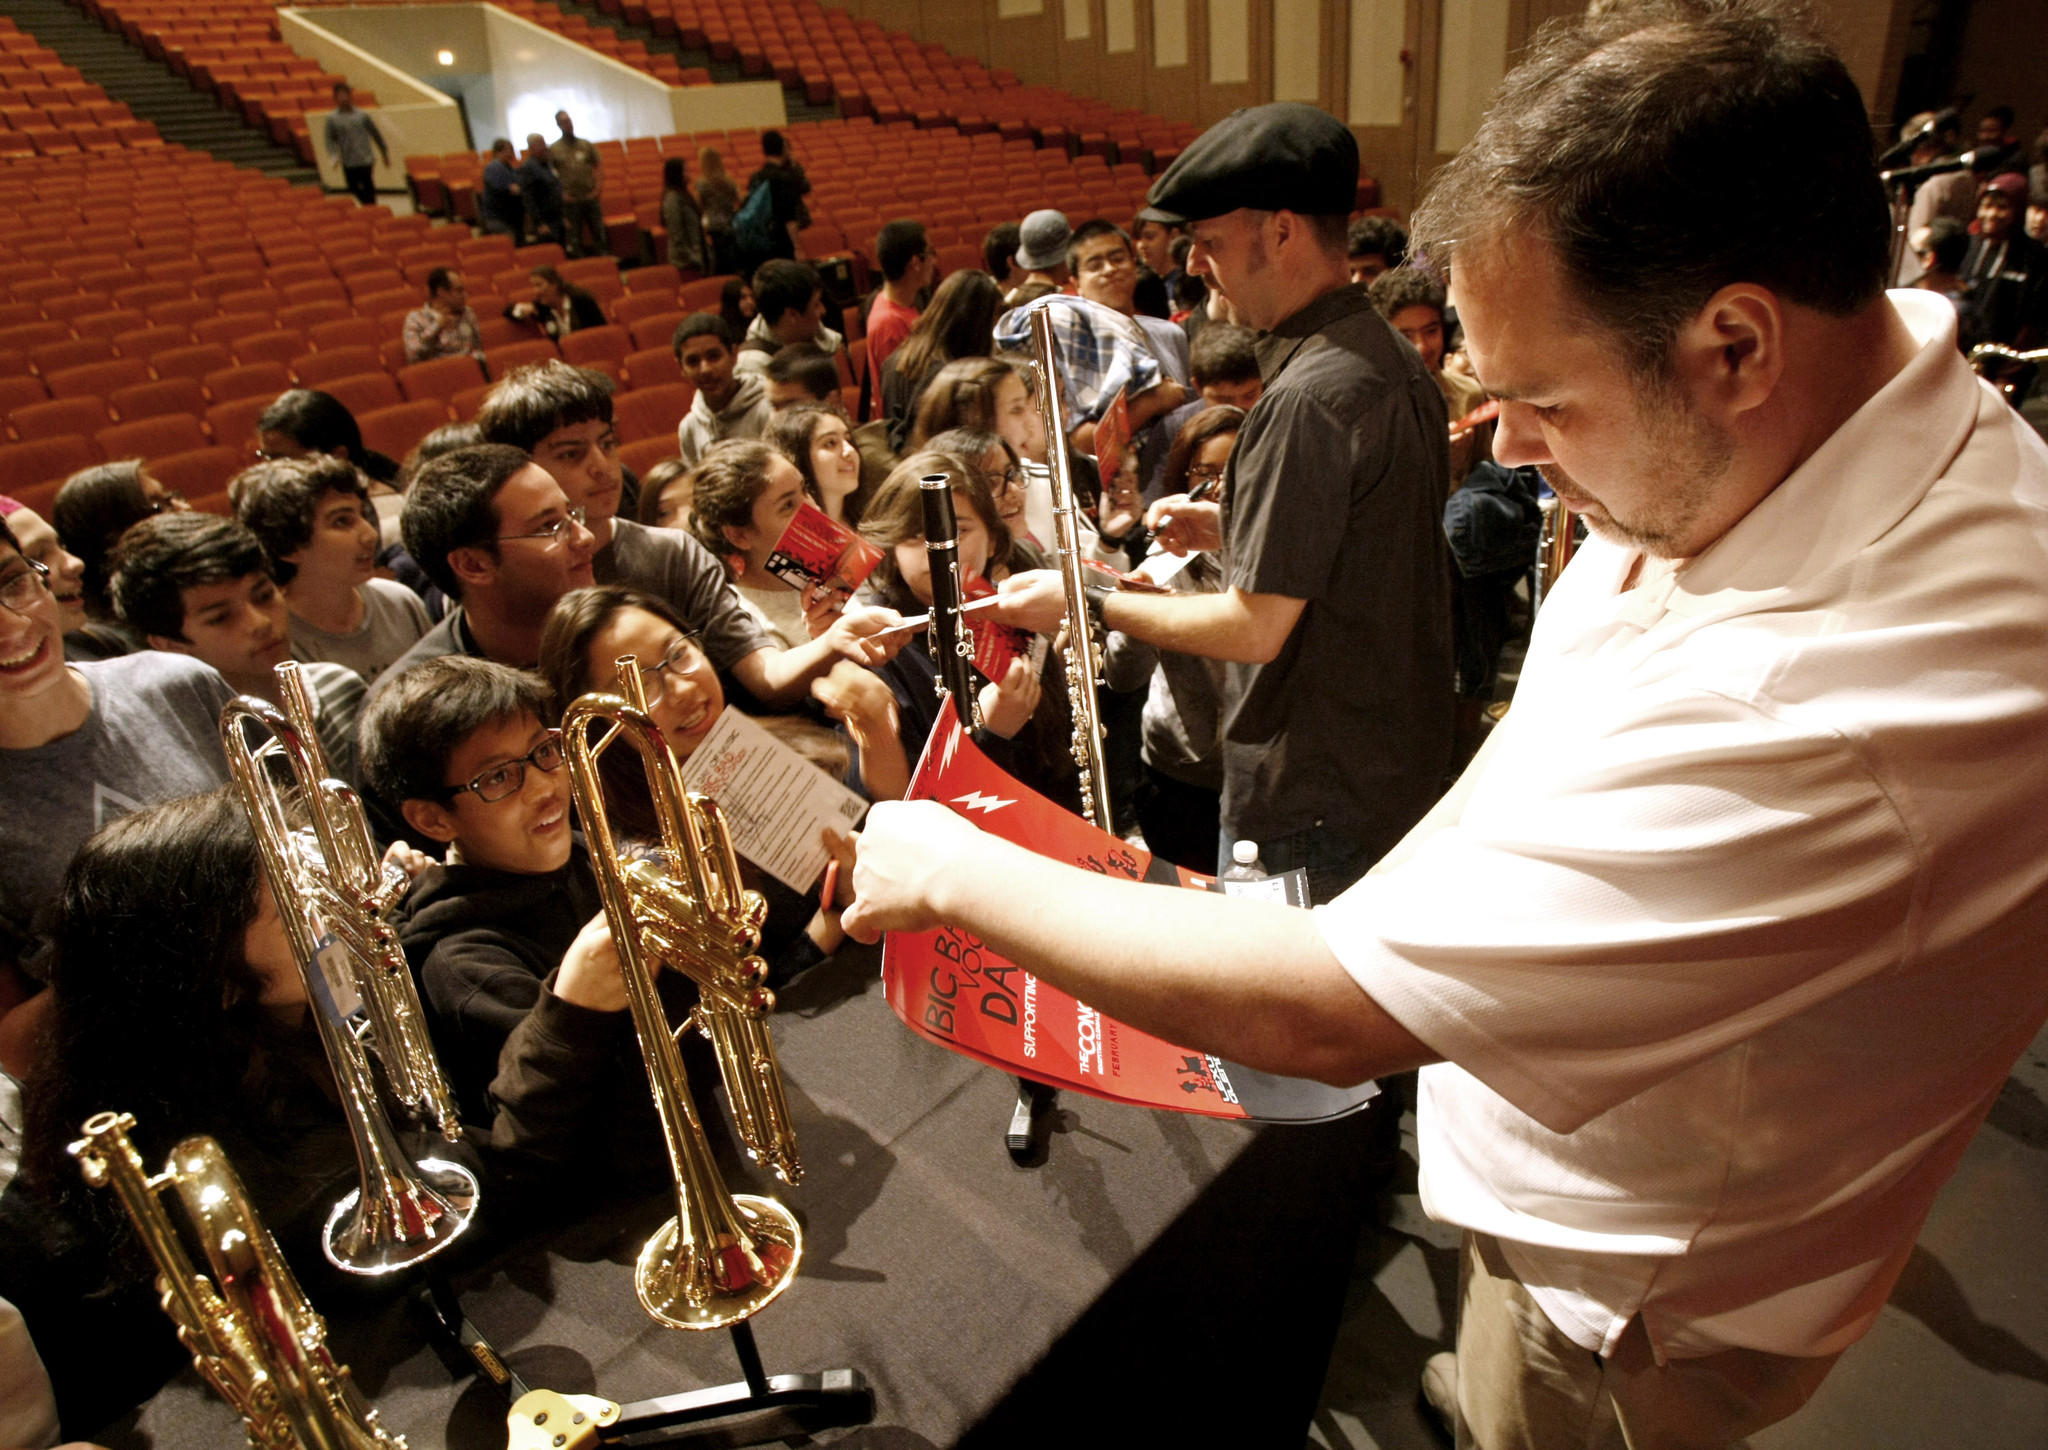 Members of the Big Bad Voodoo Daddy horn section Glen Marhevka, center, of Glendale, and Anthony Bonsera, right, sign autographs for local high school and junior high students after giving a clinic on playing music, at Glendale High School on Tuesday, Feb. 18, 2014. The band will perform a fundraising concert at the Alex Theater in a few days to benefit music and arts at Glendale schools.